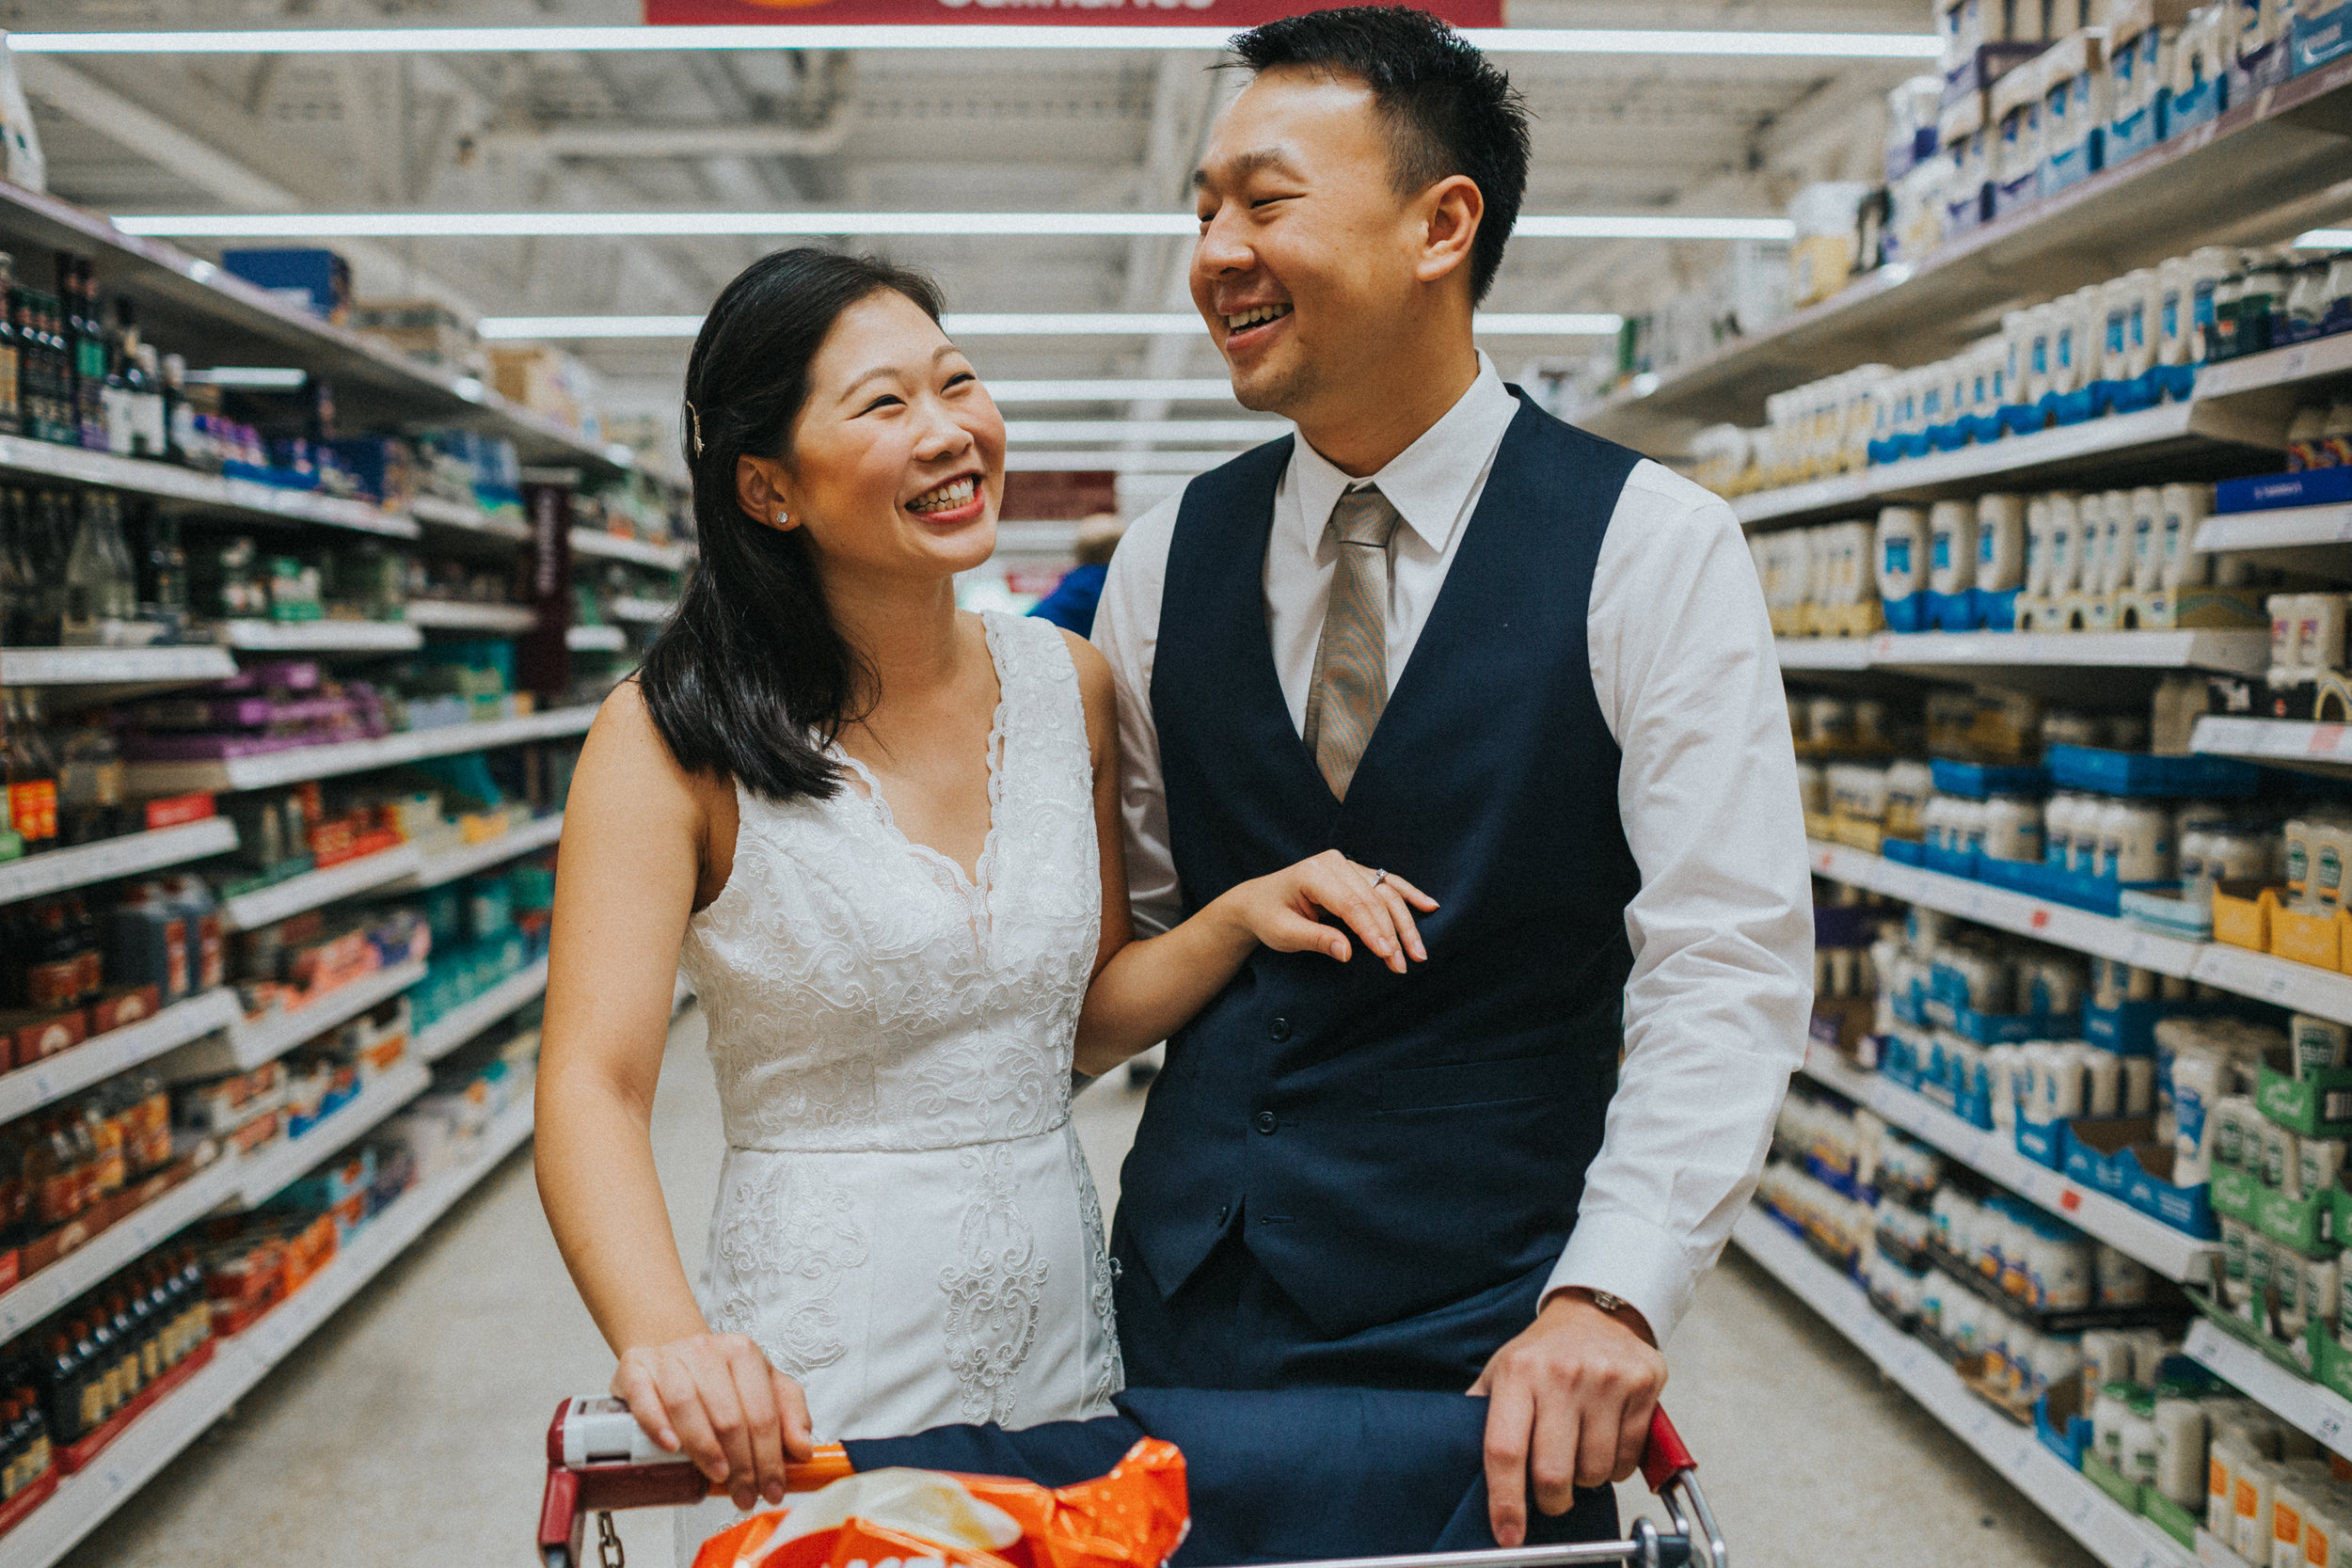 Couple smiling together in supermarket.